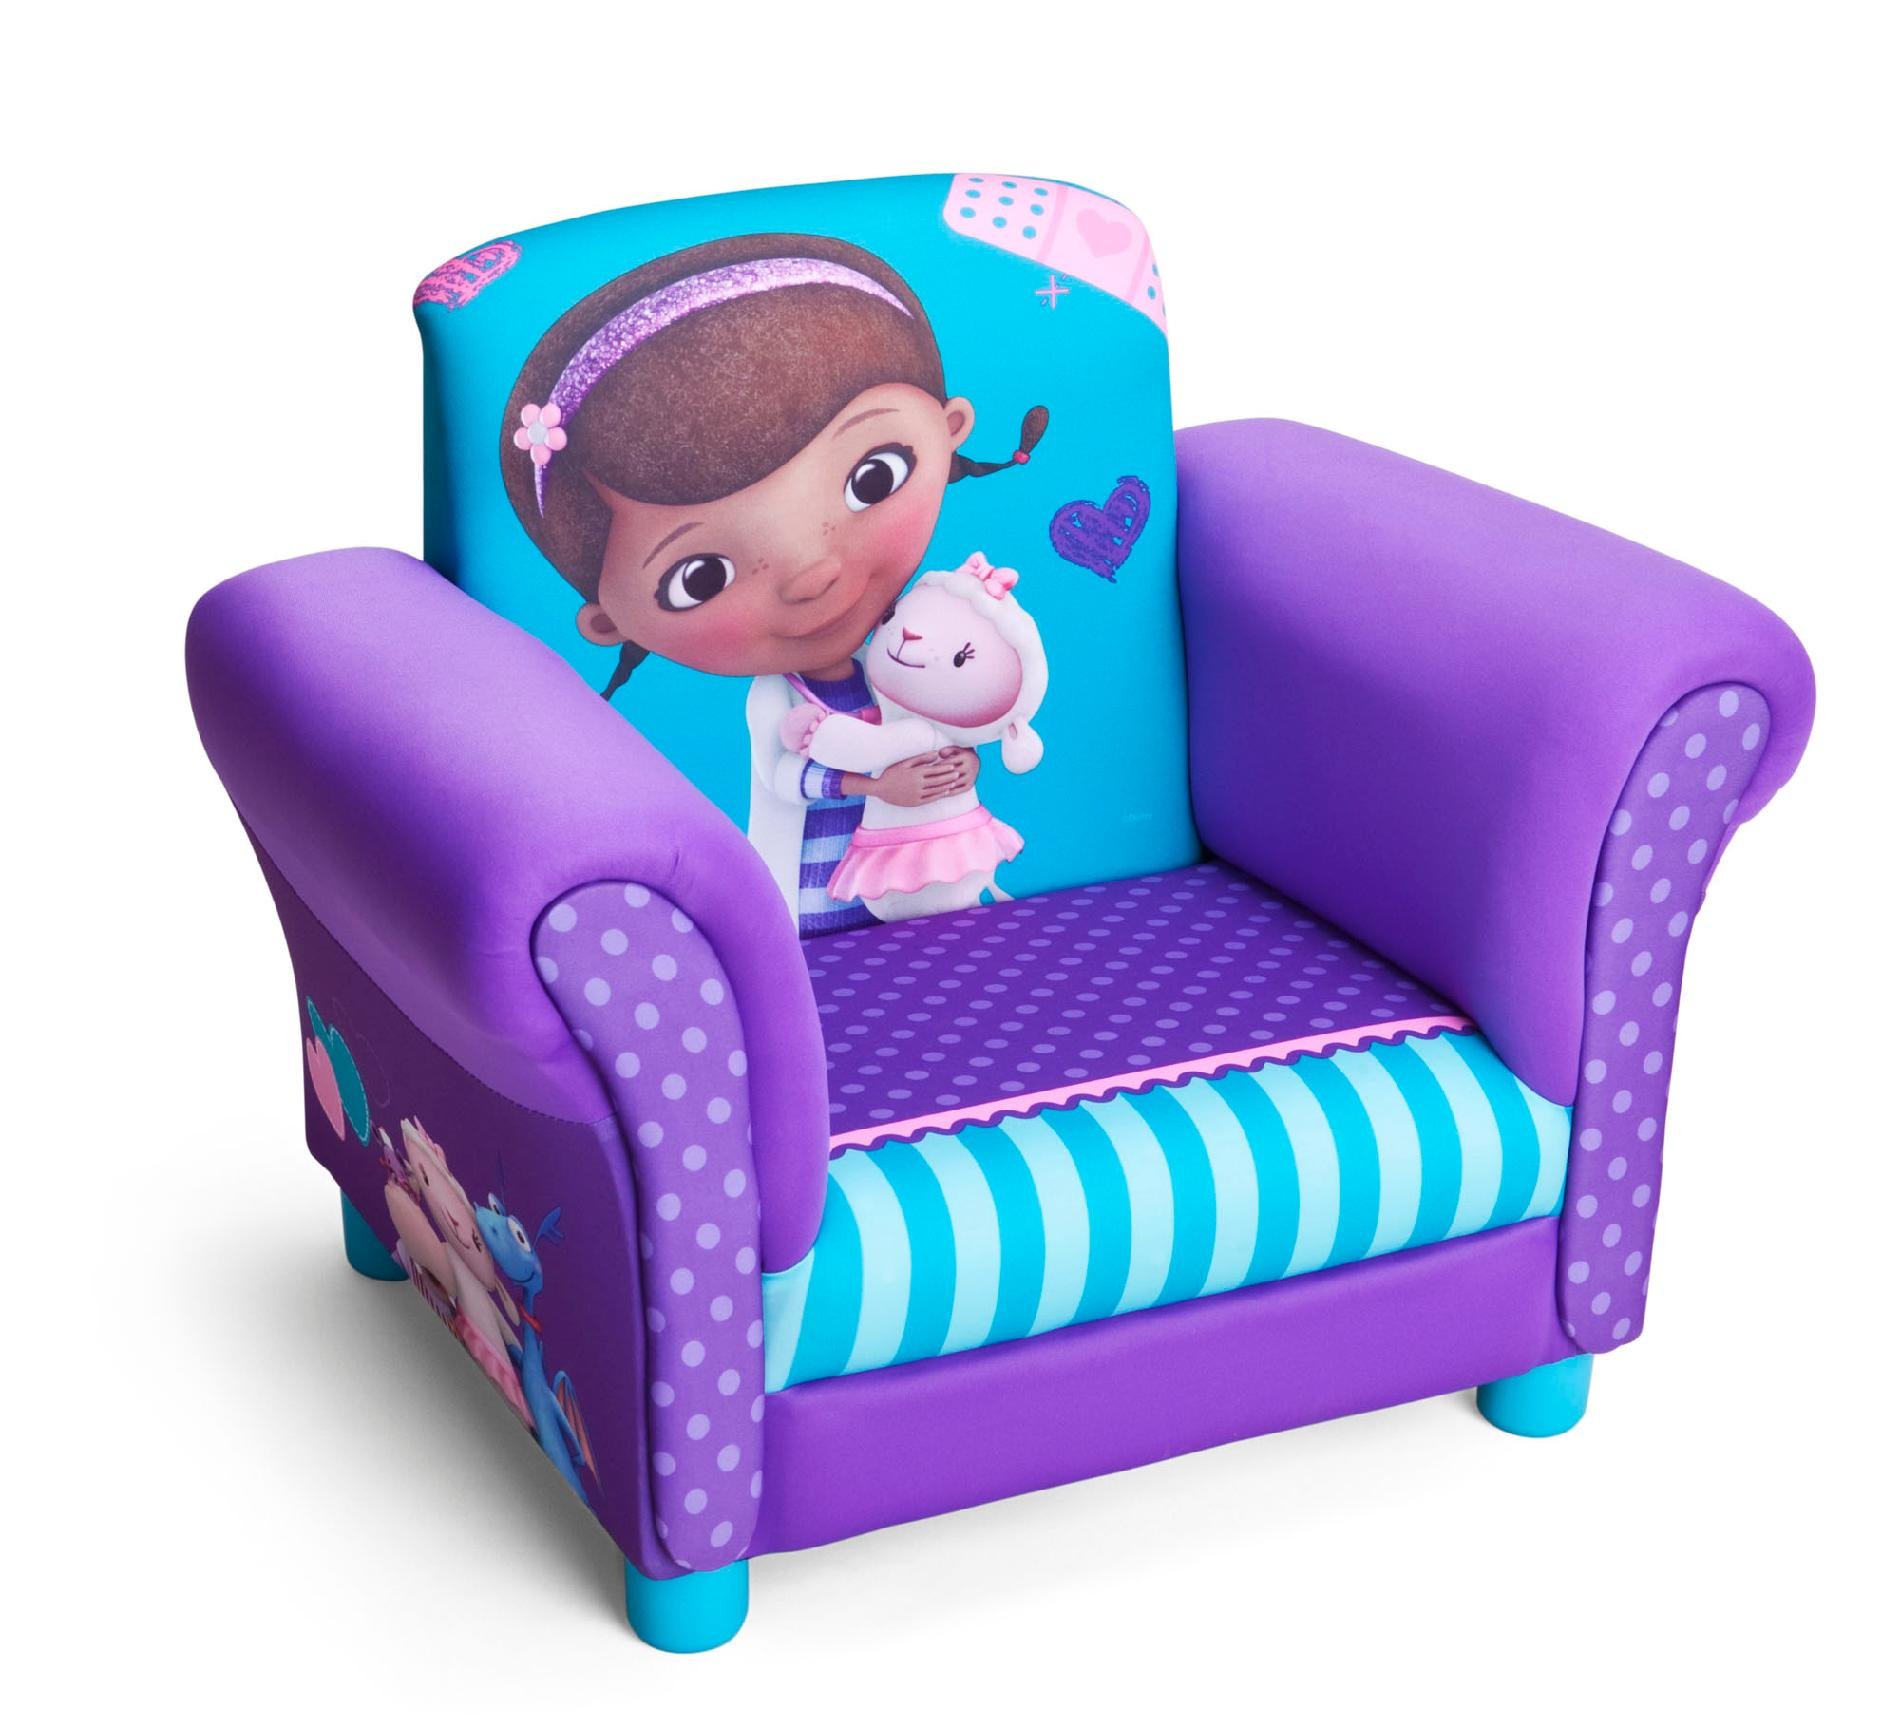 Toddler Chairs Upholstered Delta Children Doc Mcstuffins Upholstered Chair